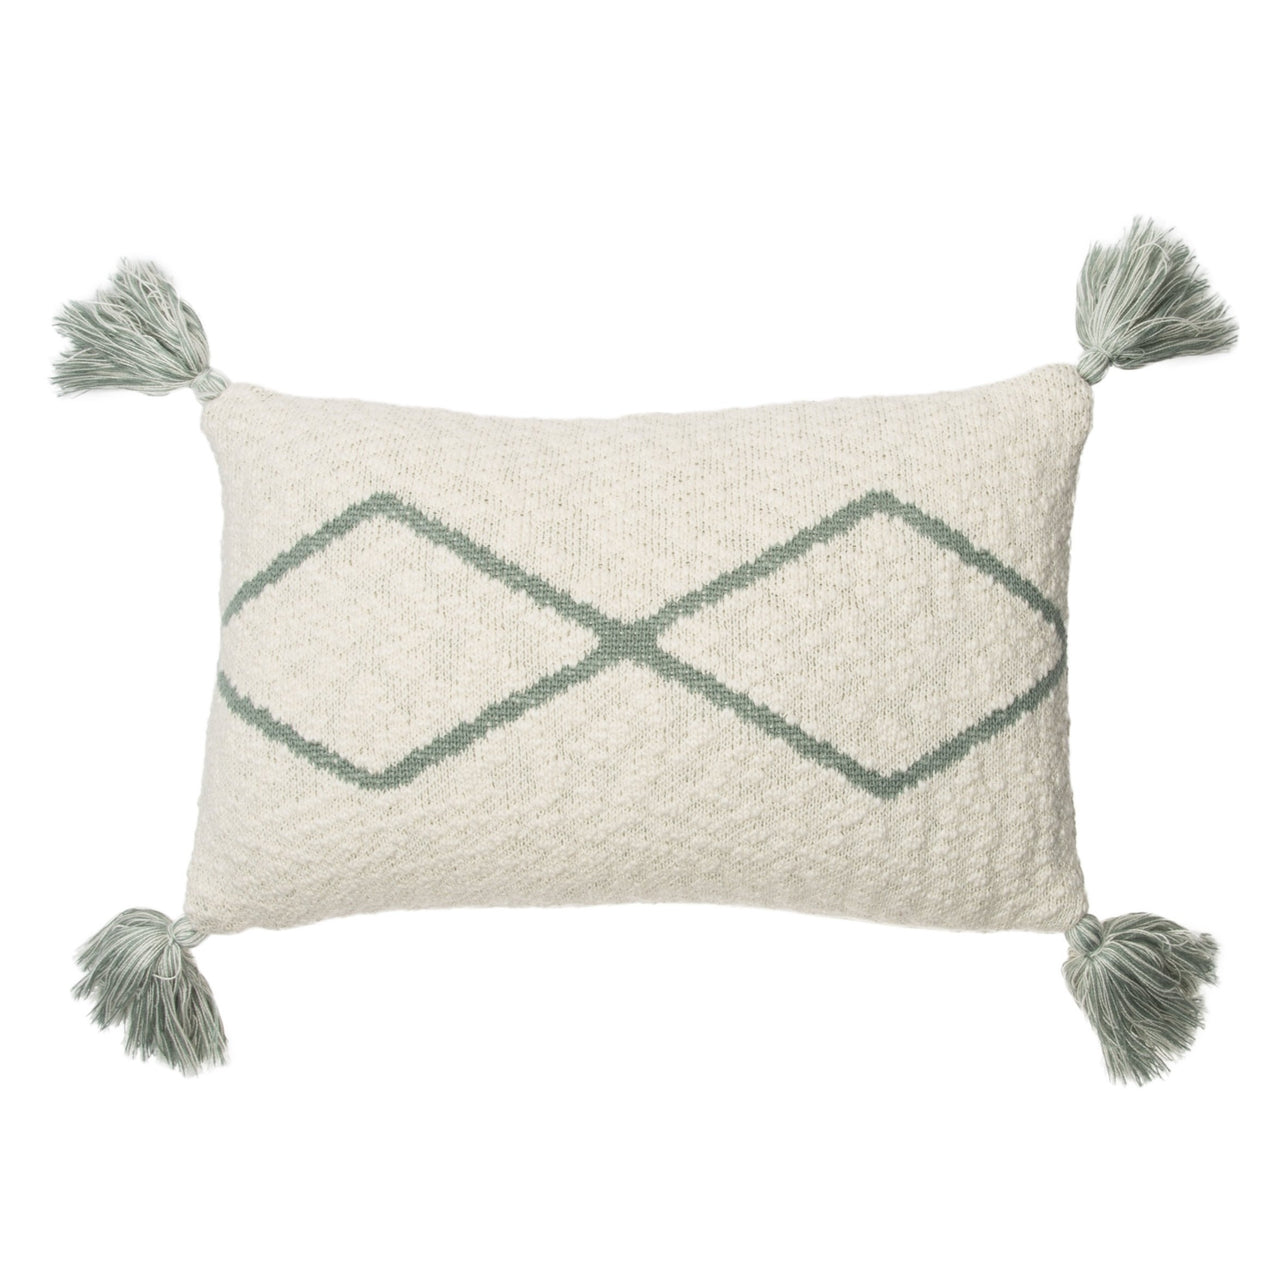 Little Oasis Knitted Washable Cushion - Natural Indus Blue - Rooms for Rascals, a Leafy Lanes Retailers Ltd business